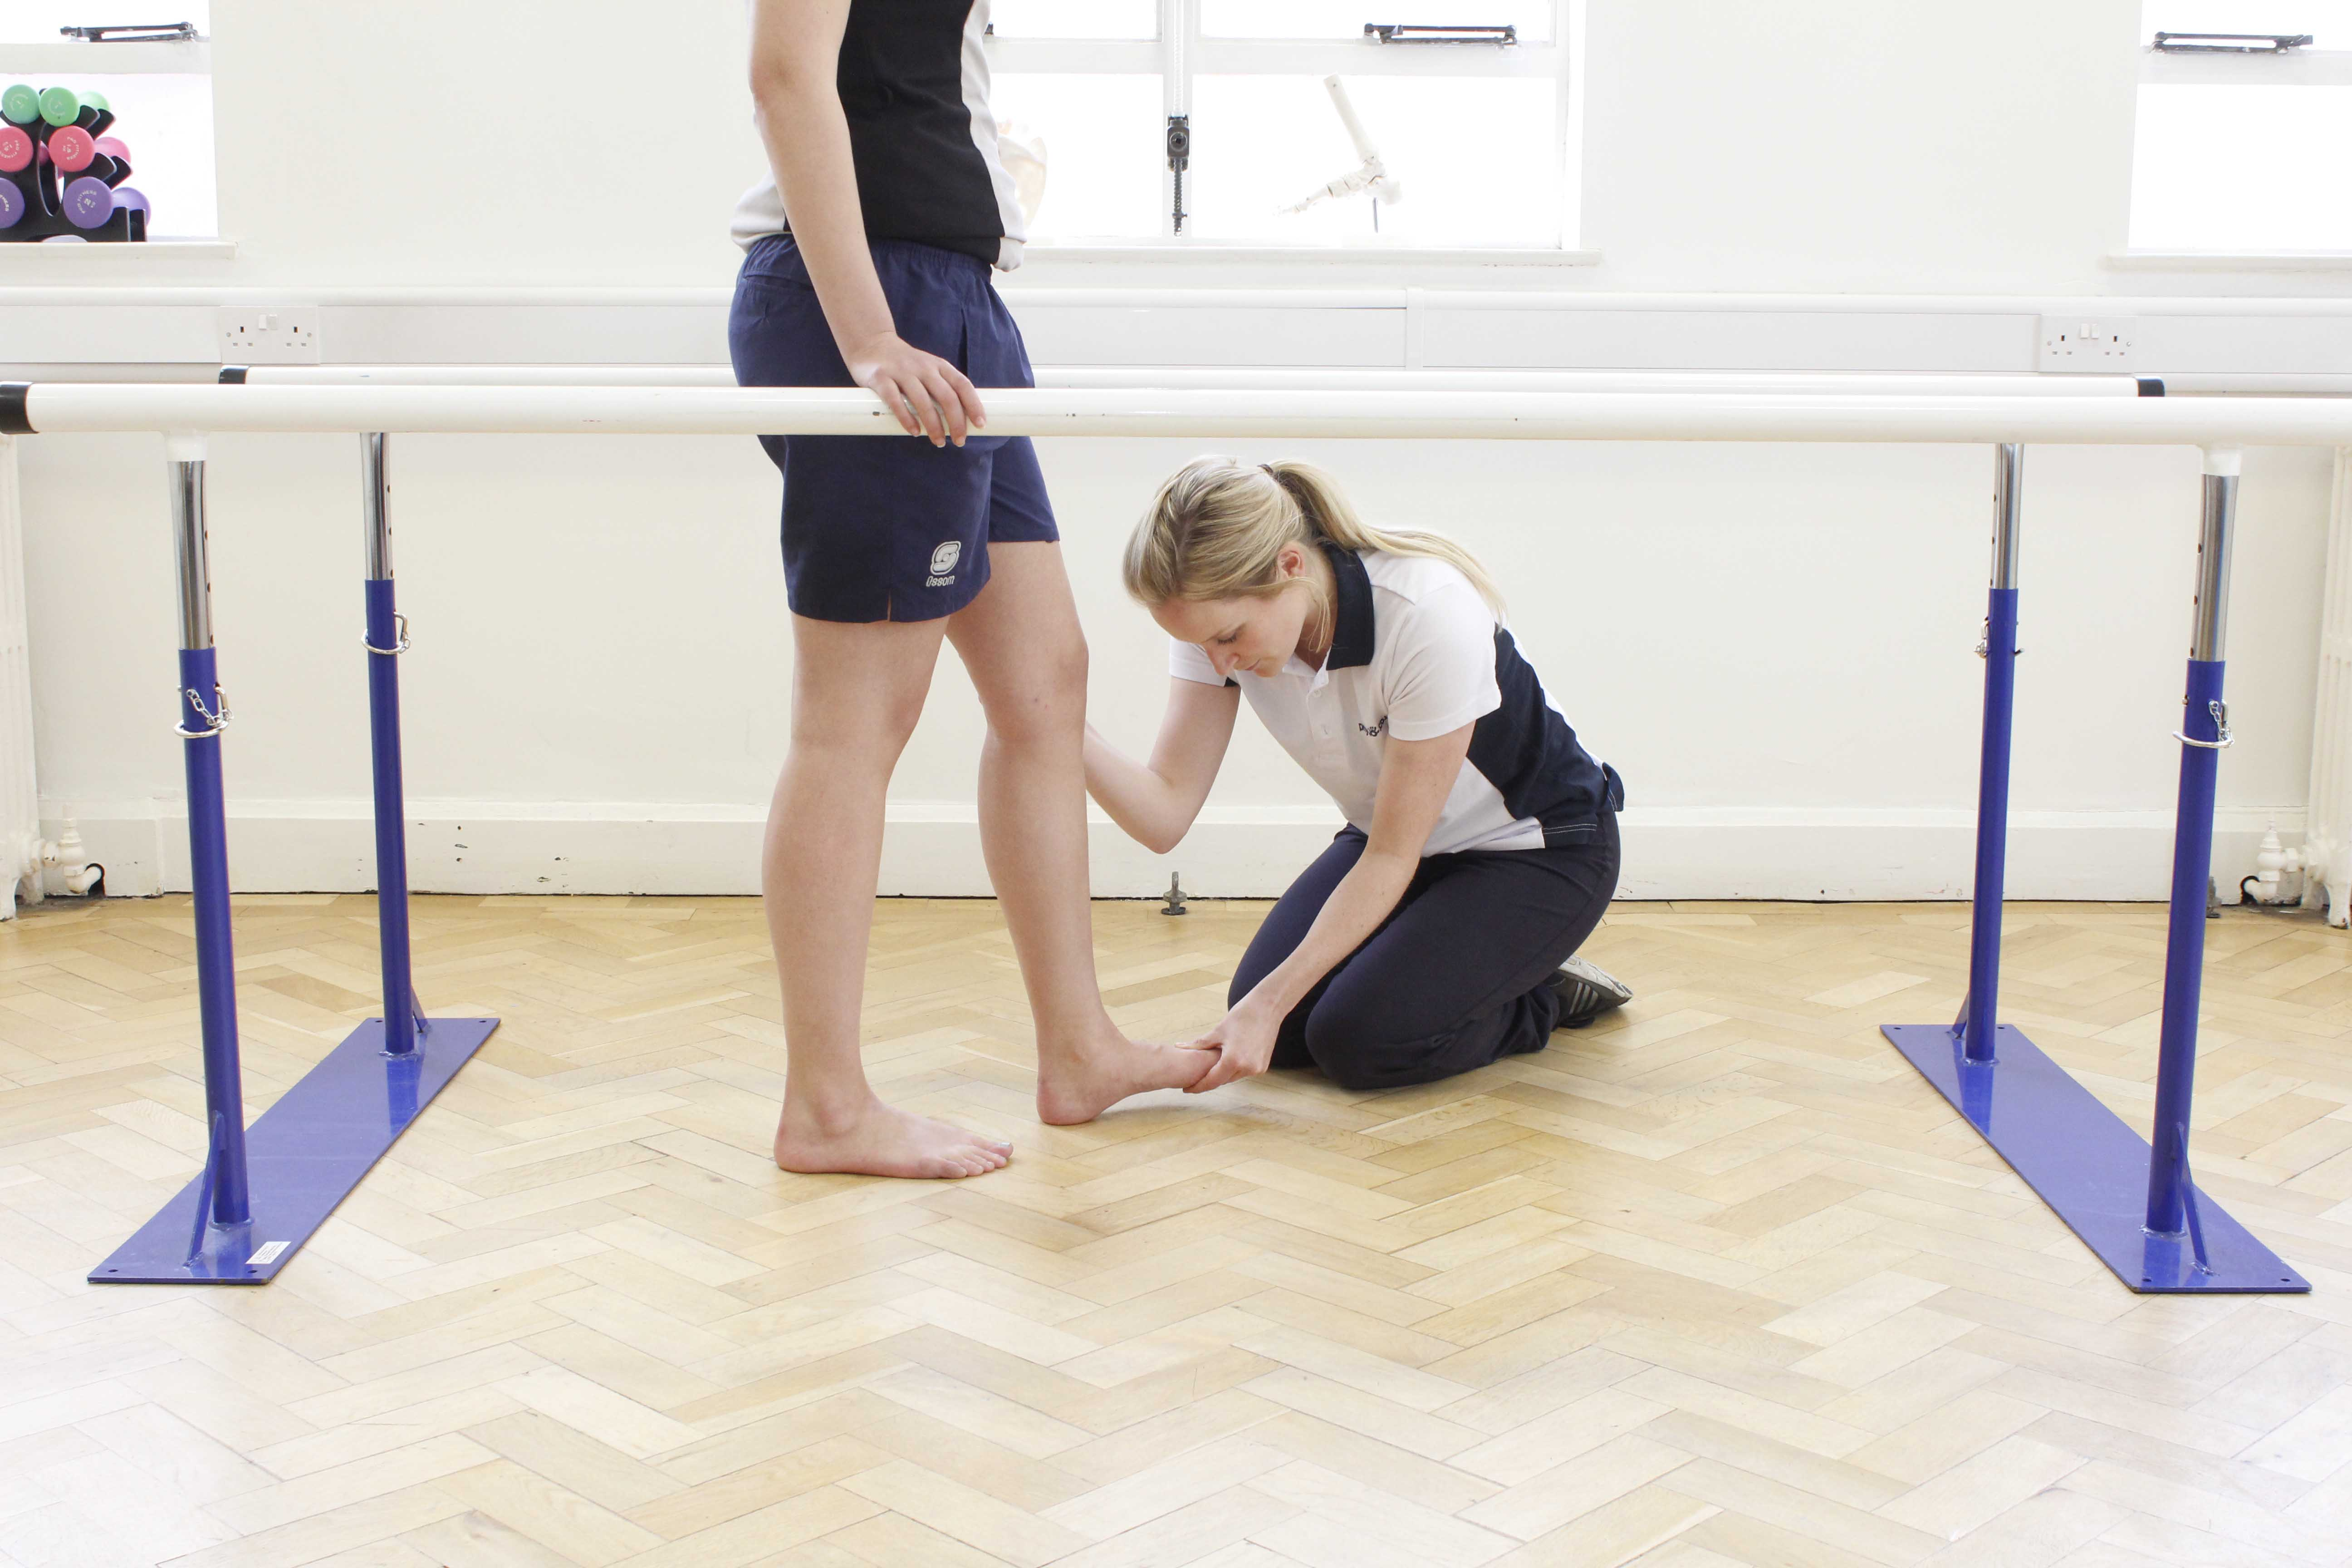 Functional exercises for the foot and ankle, guided by an experienced physiotherapist